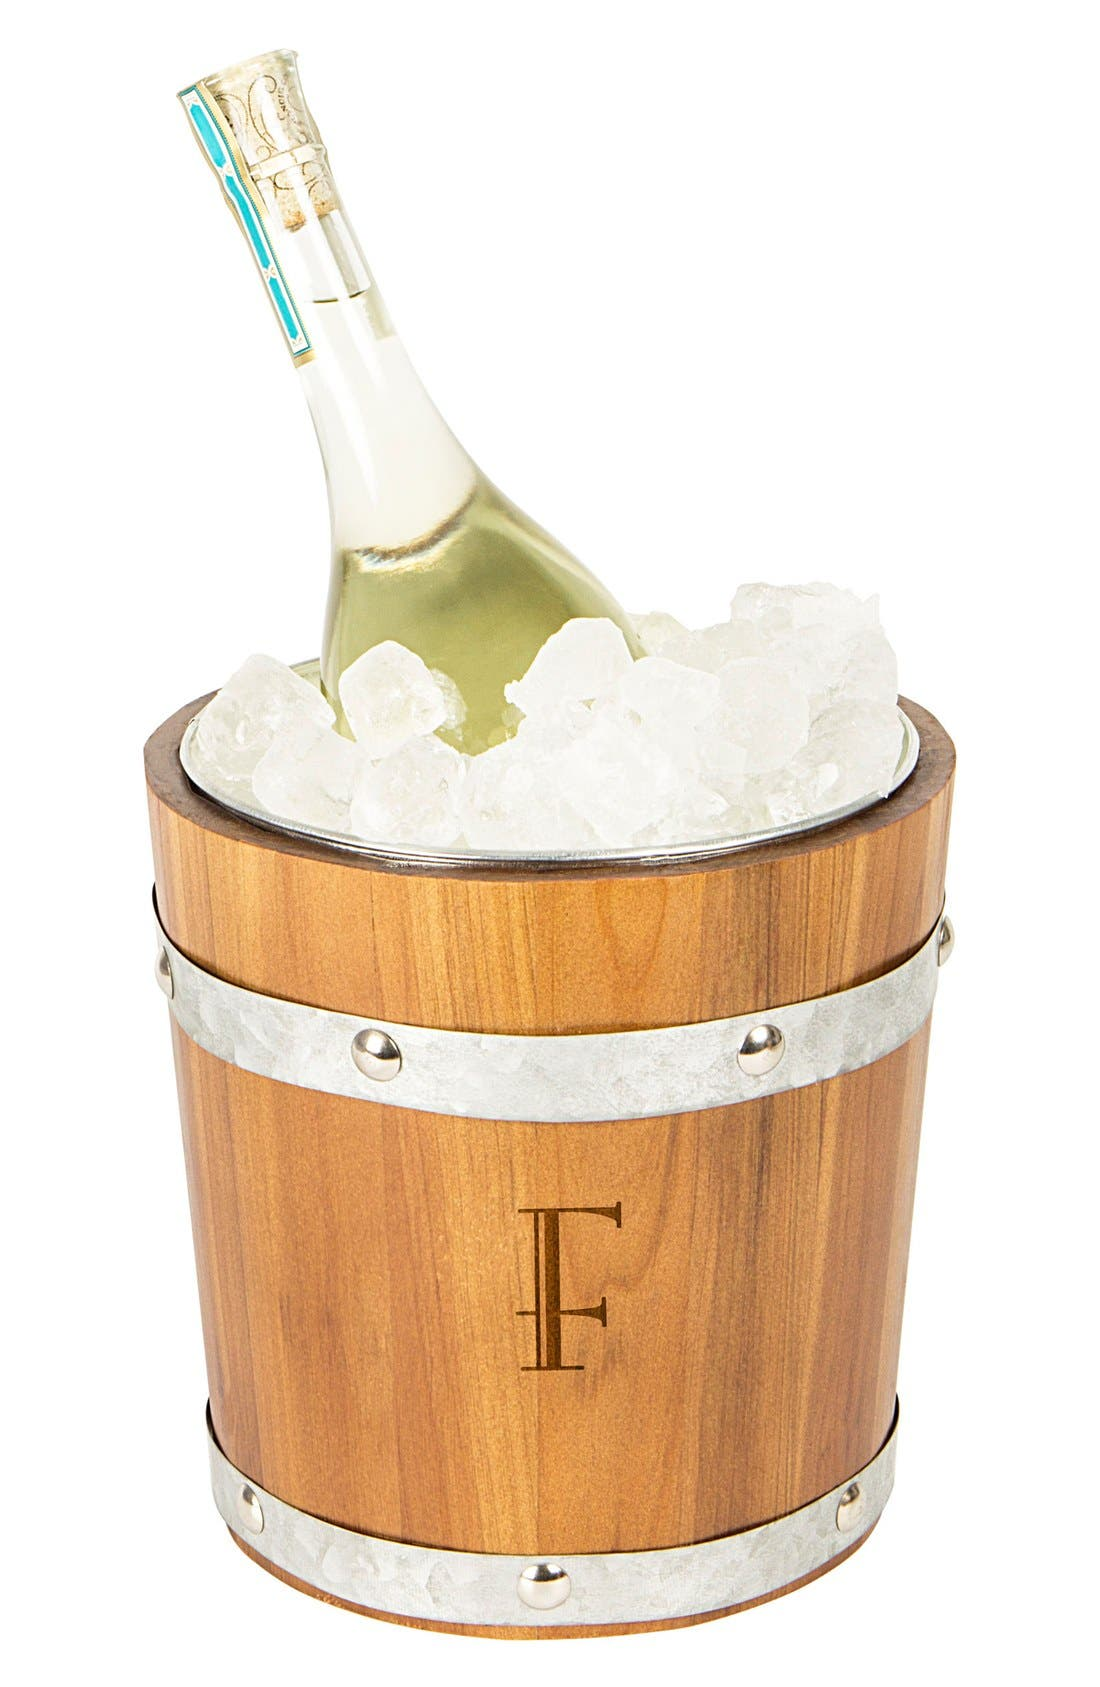 Main Image - Cathy's Concepts Rustic Monogram Ice Bucket